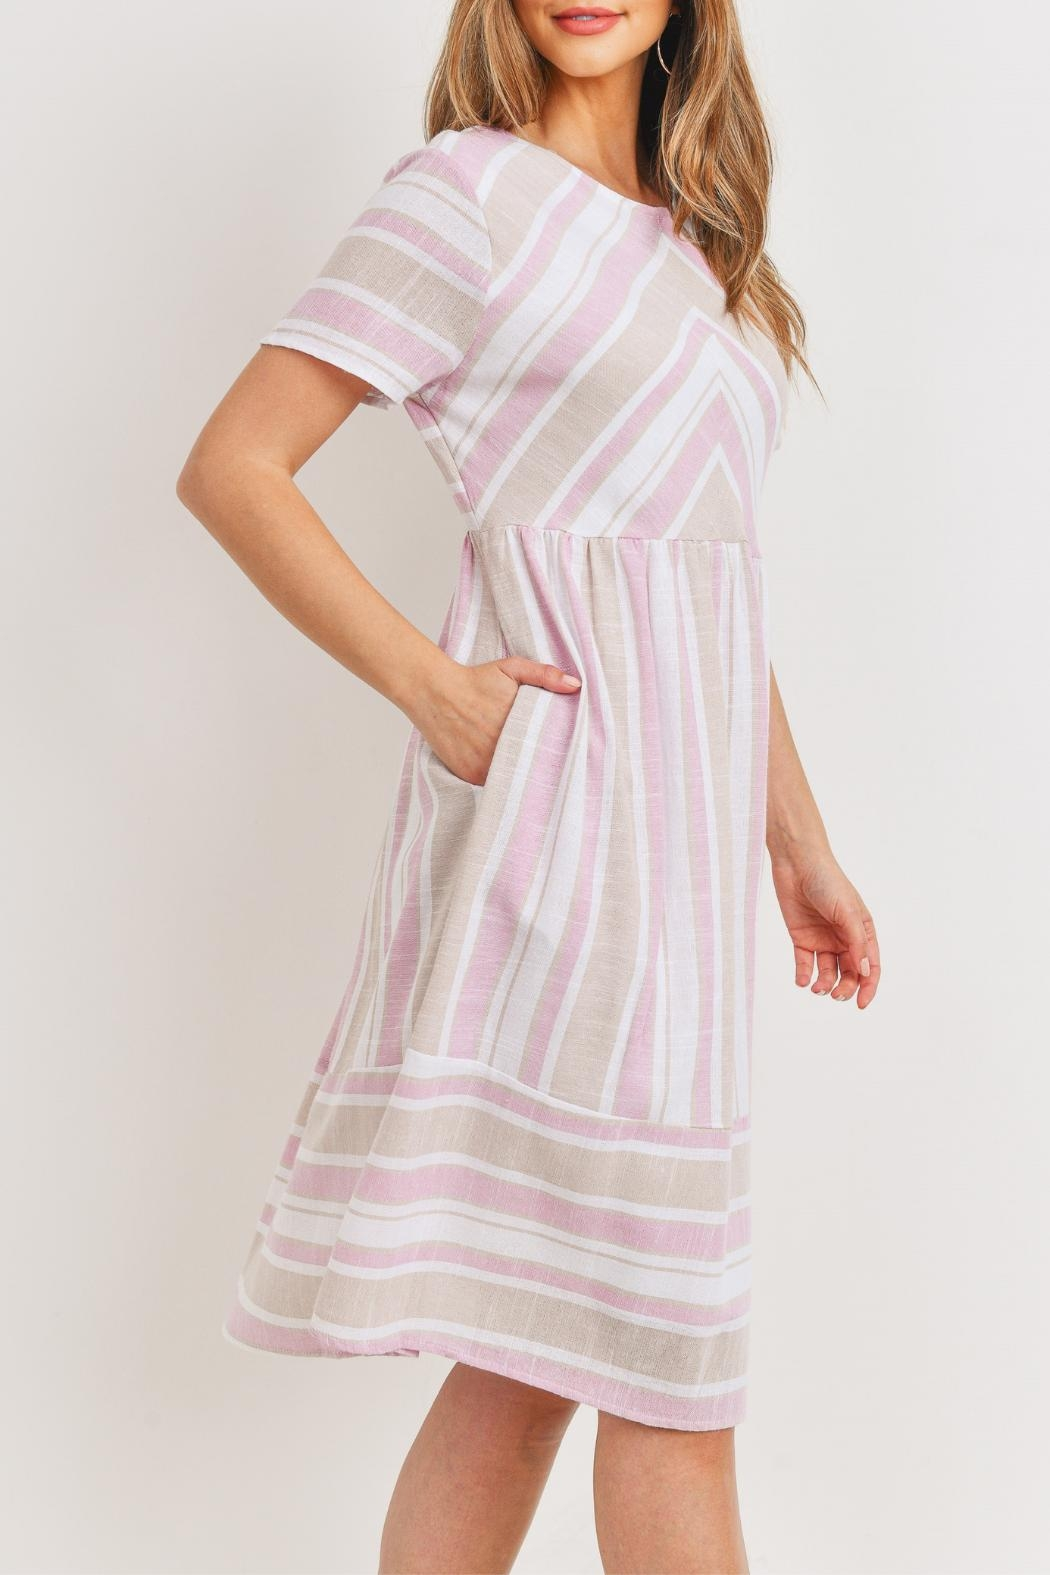 Ces Femme Pink-Taupe Midi Dress - Side Cropped Image